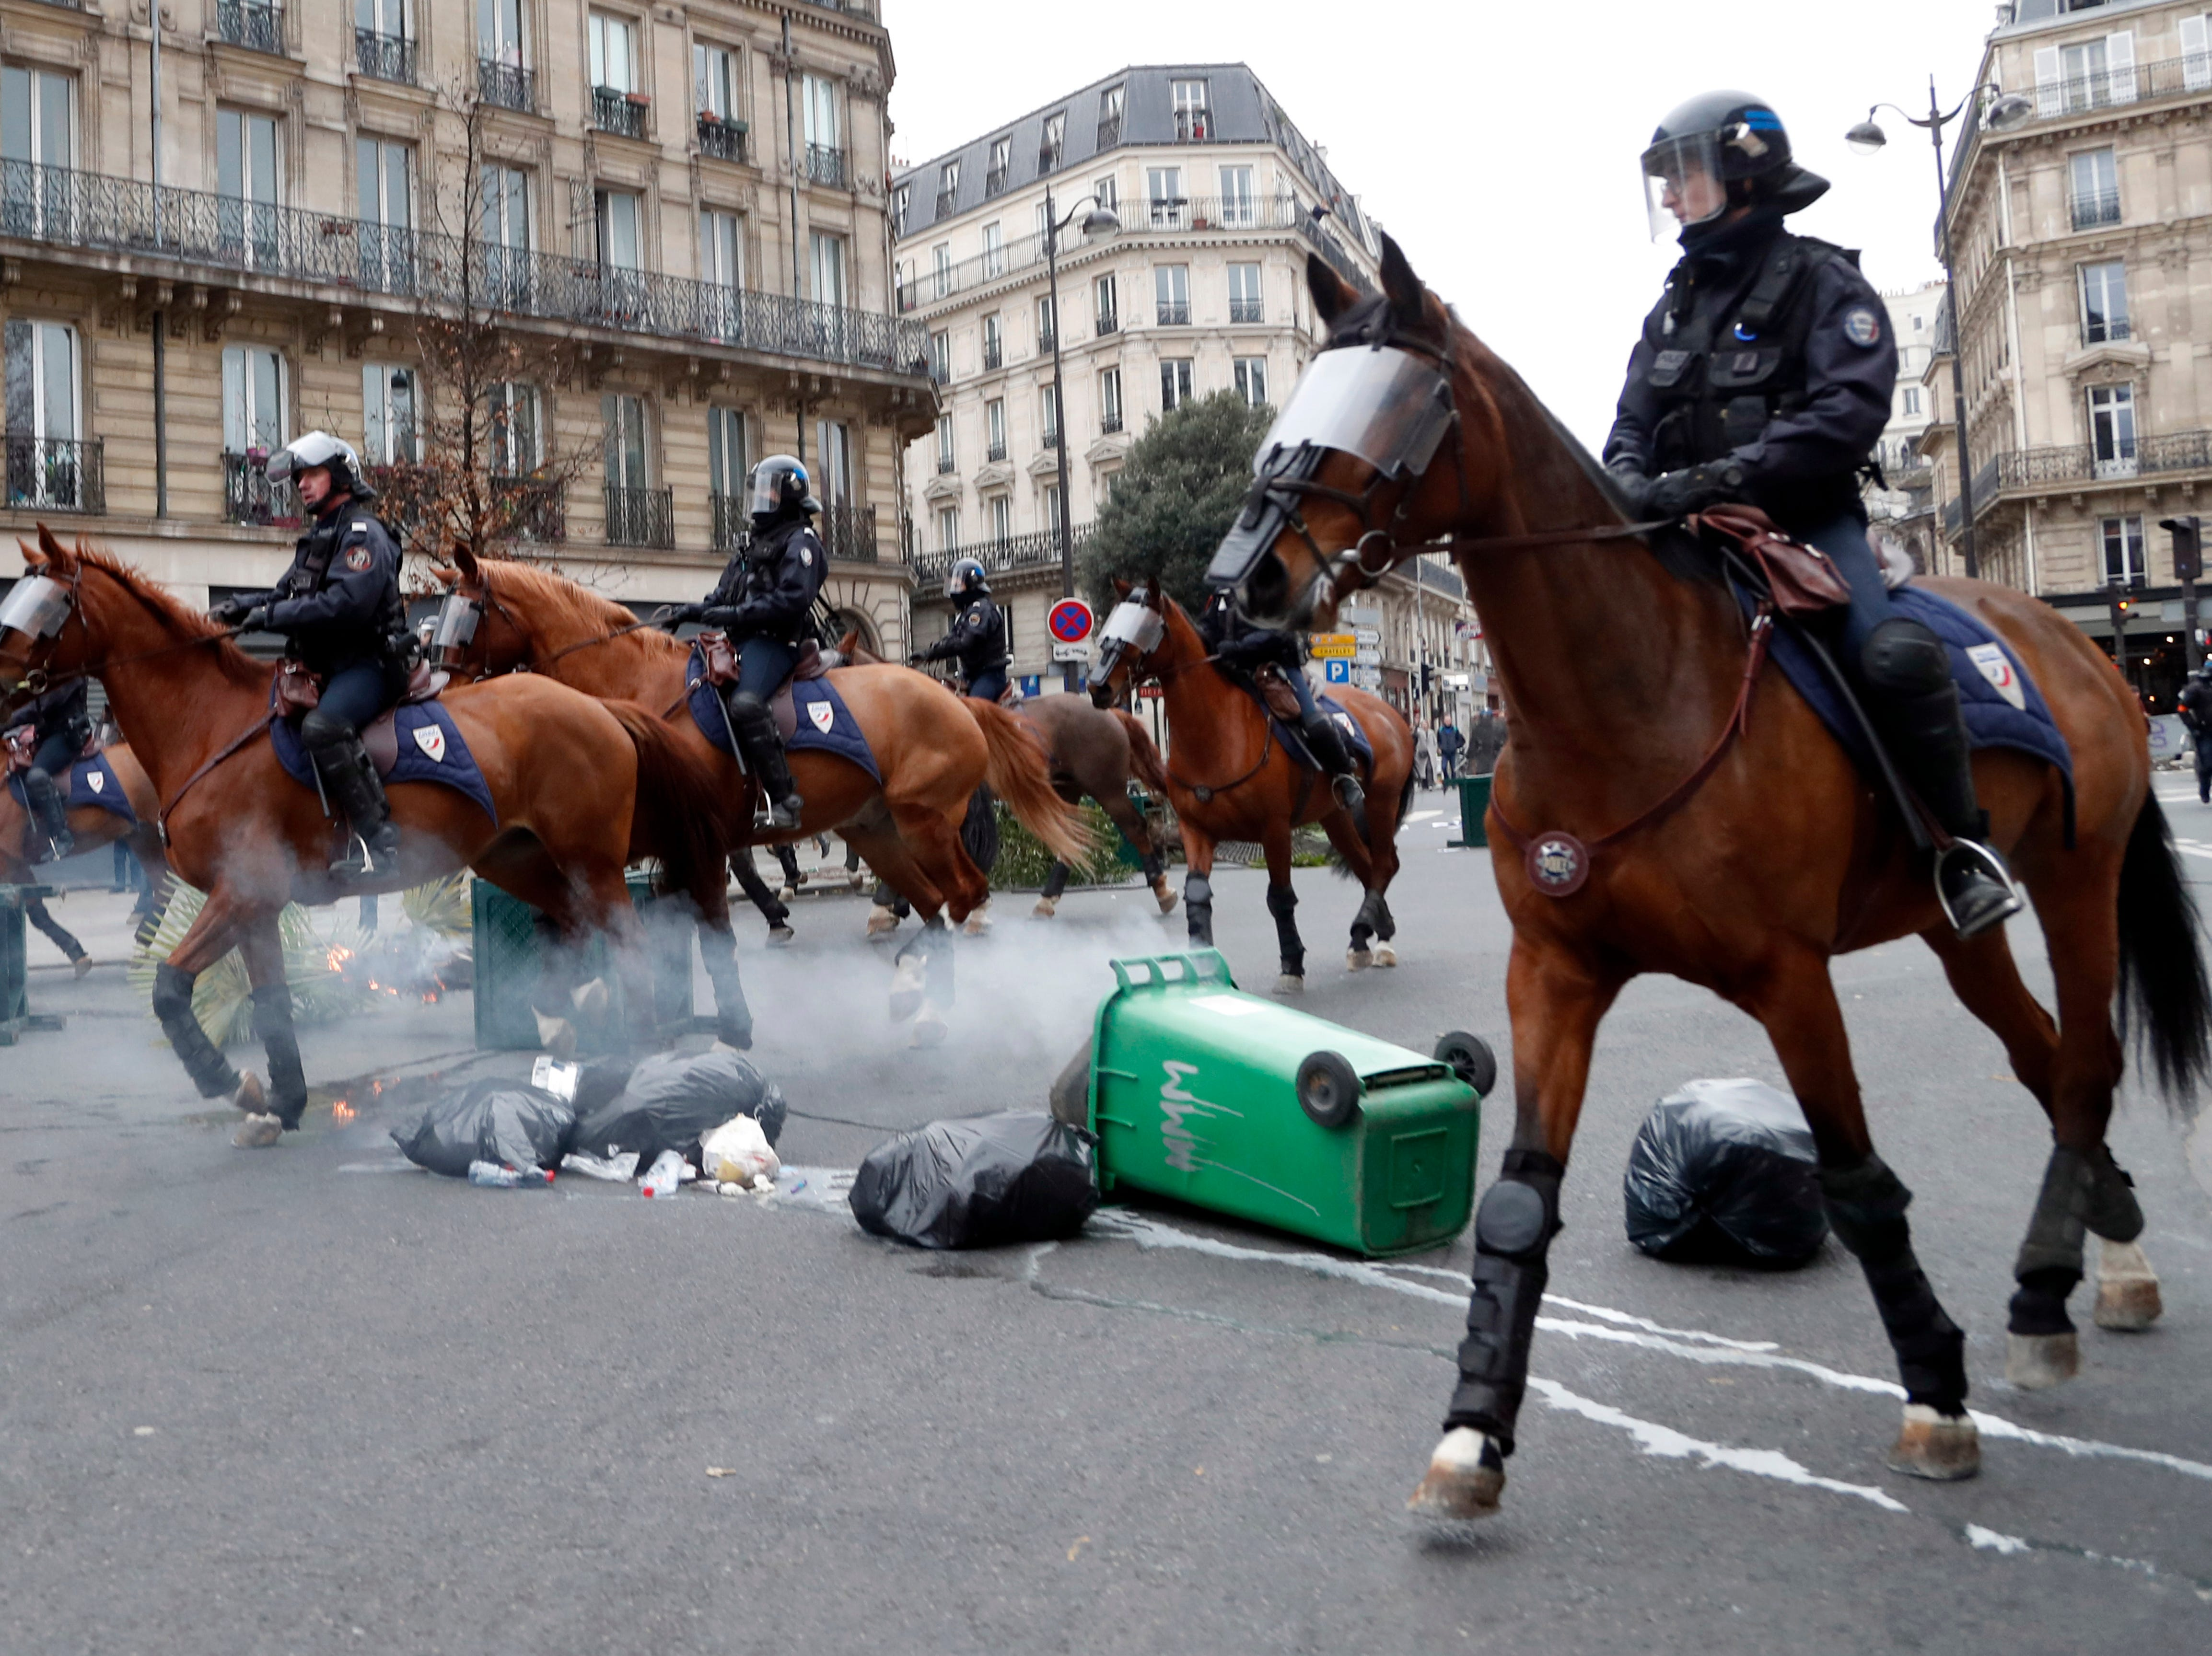 Mounted Police officers on their horses take their positions during clashes with yellow-vested protesters, in Paris, France, Saturday, Dec. 8, 2018. Crowds of protesters angry at President Emmanuel Macron and France's high taxes tried to converge on the presidential palace Saturday, some scuffling with police firing tear gas, amid exceptional security measures aimed at preventing a repeat of last week's rioting.